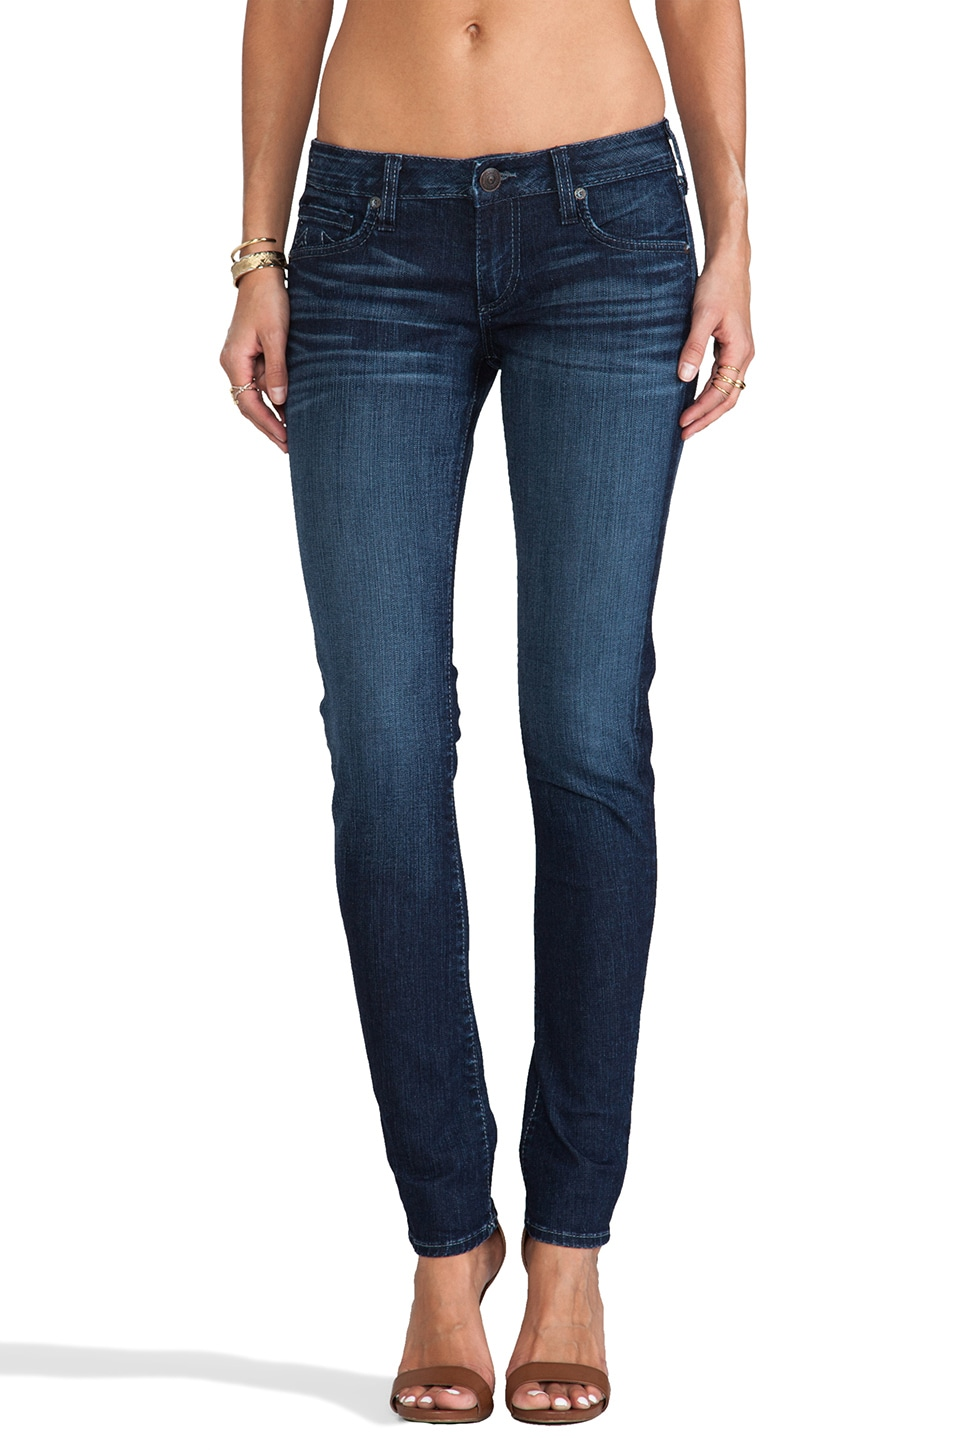 True Religion Jude Low Rise Skinny in Cobalt Skies